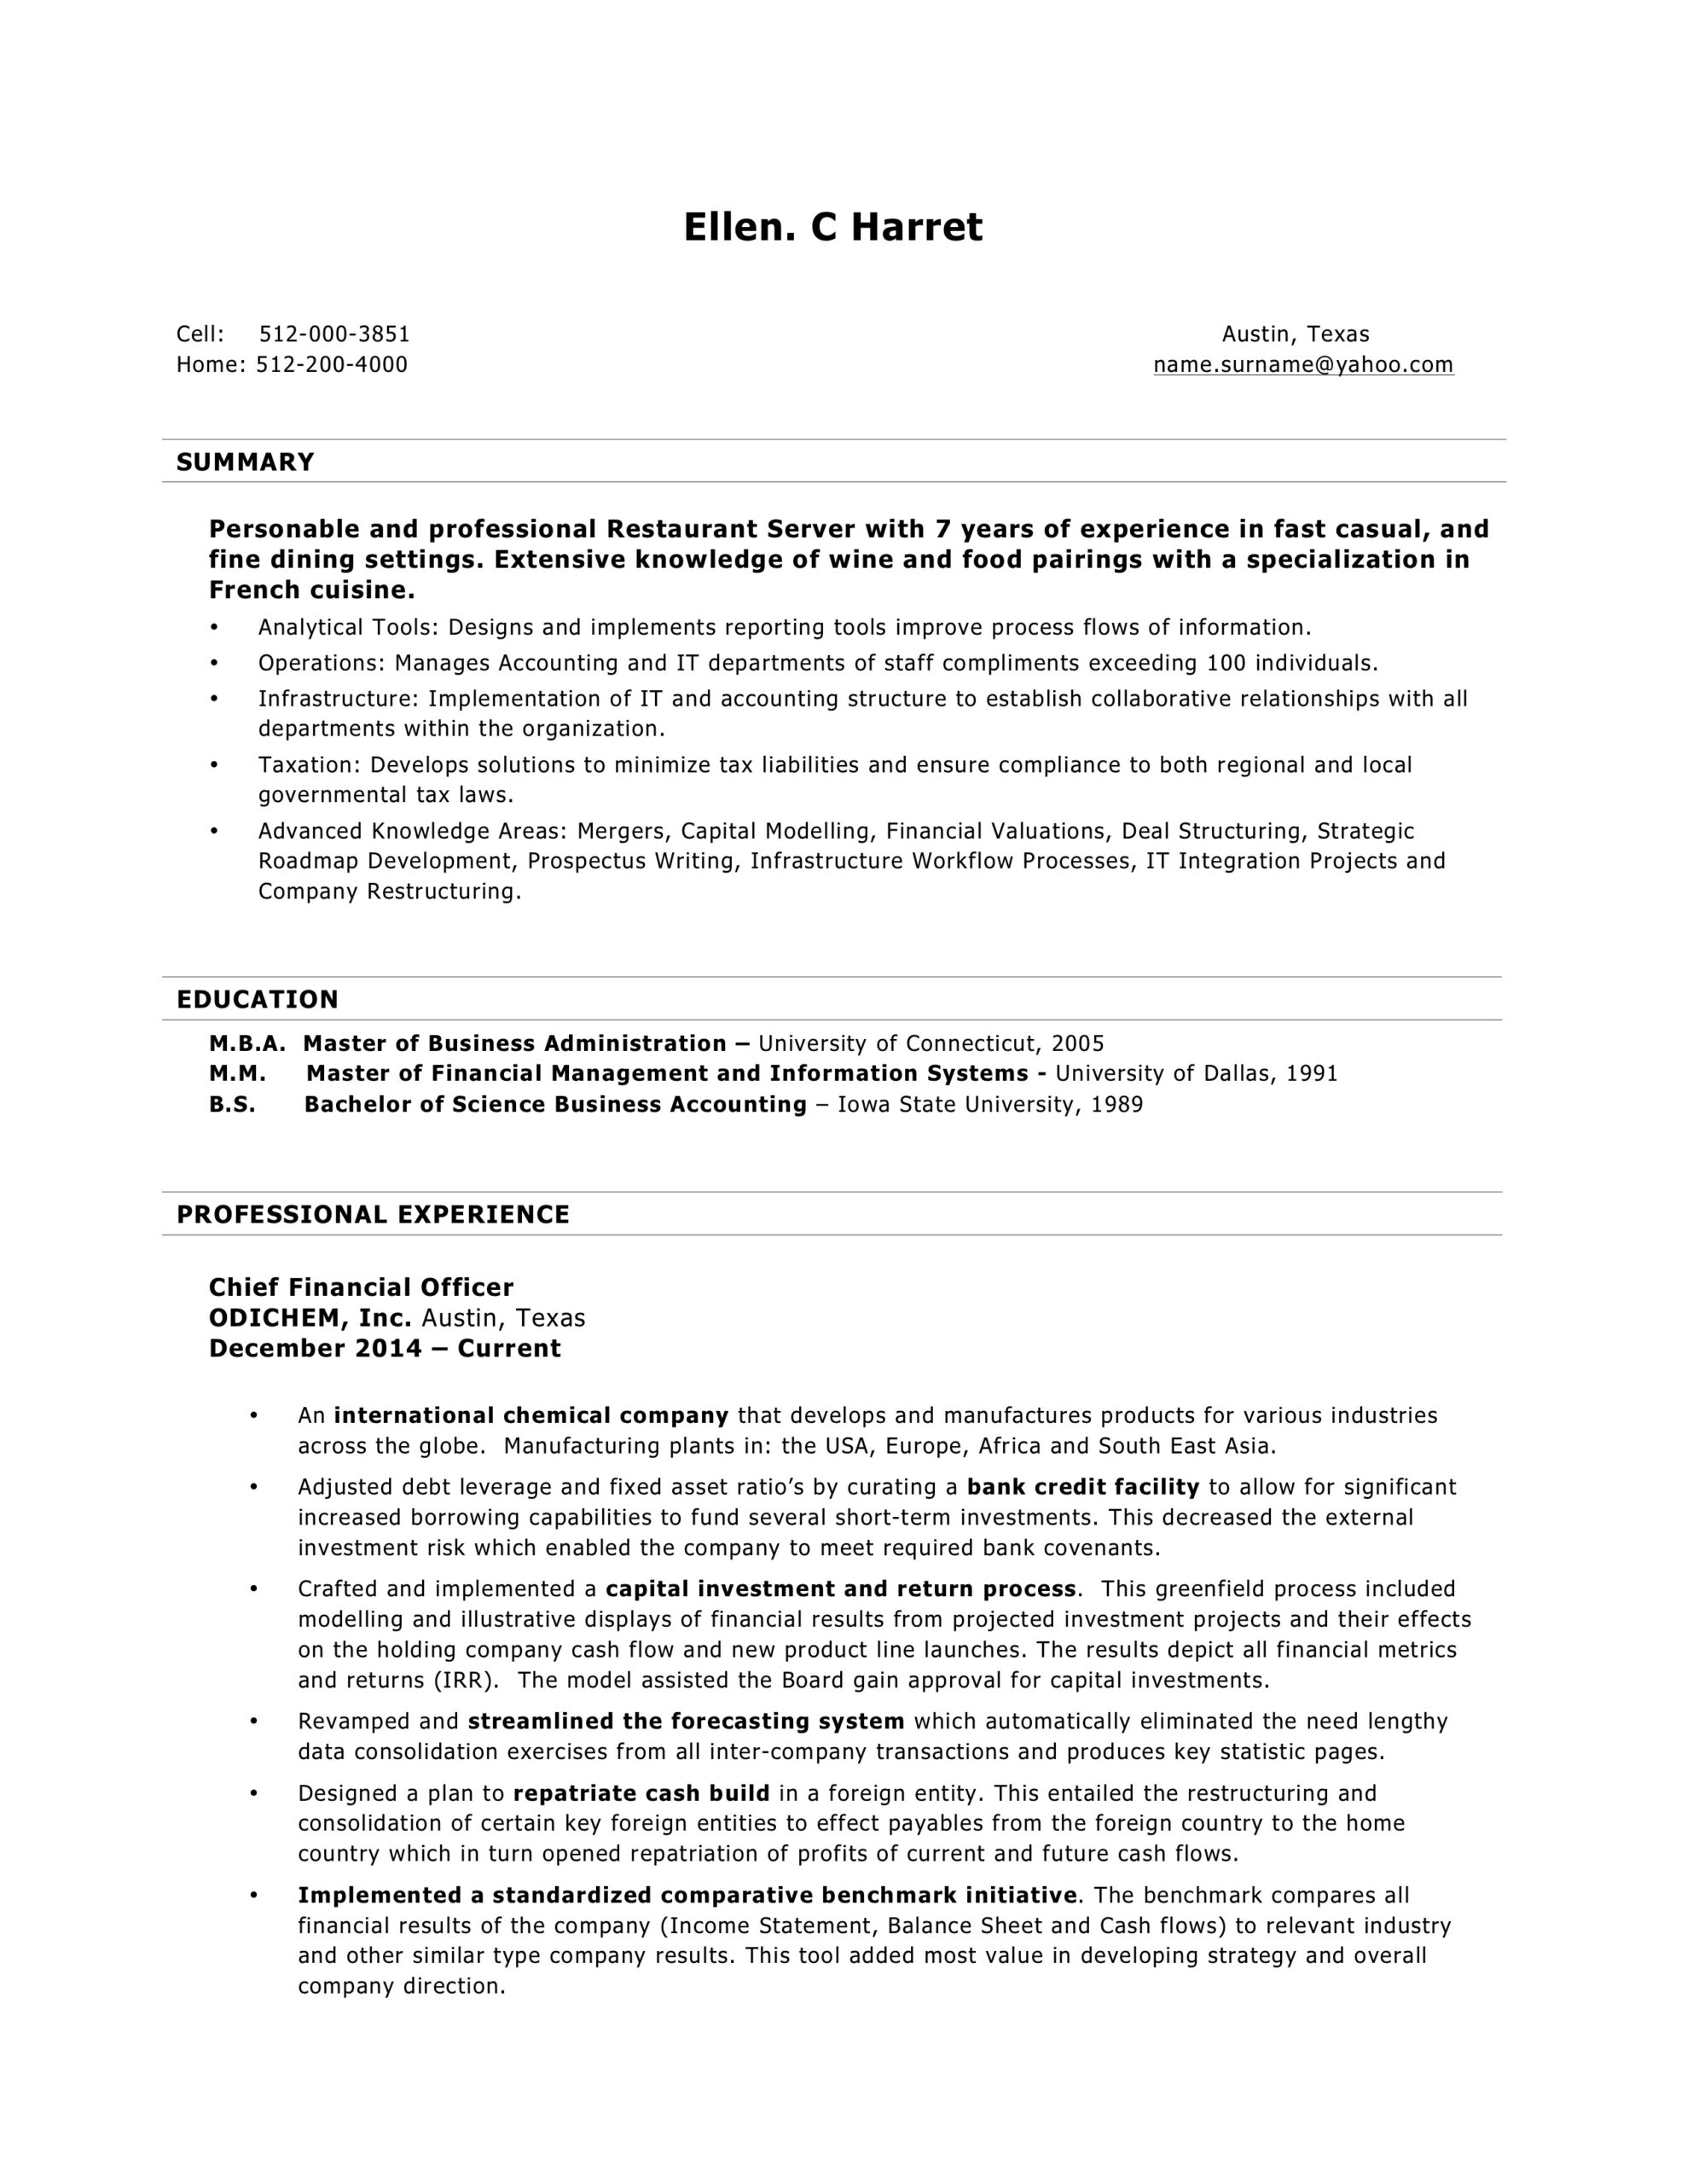 free word resume templates in ms using microsoft server template examples college Resume Using Microsoft Word Resume Templates